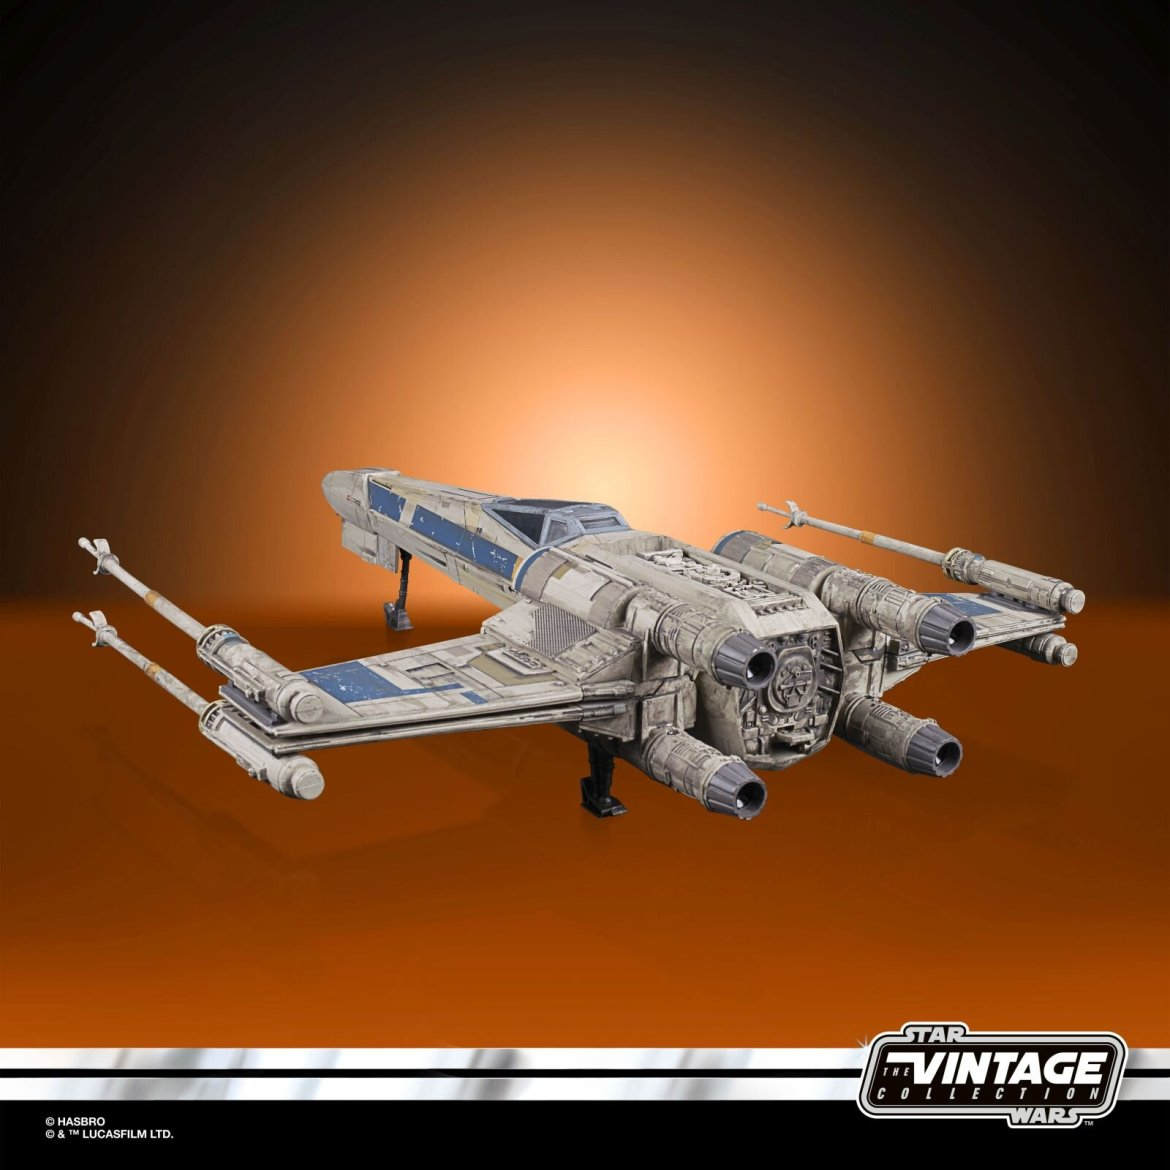 STAR WARS THE VINTAGE COLLECTION ANTOC MERRICK'S X-WING FIGHTER Vehicle and Figure - oop 1.jpg